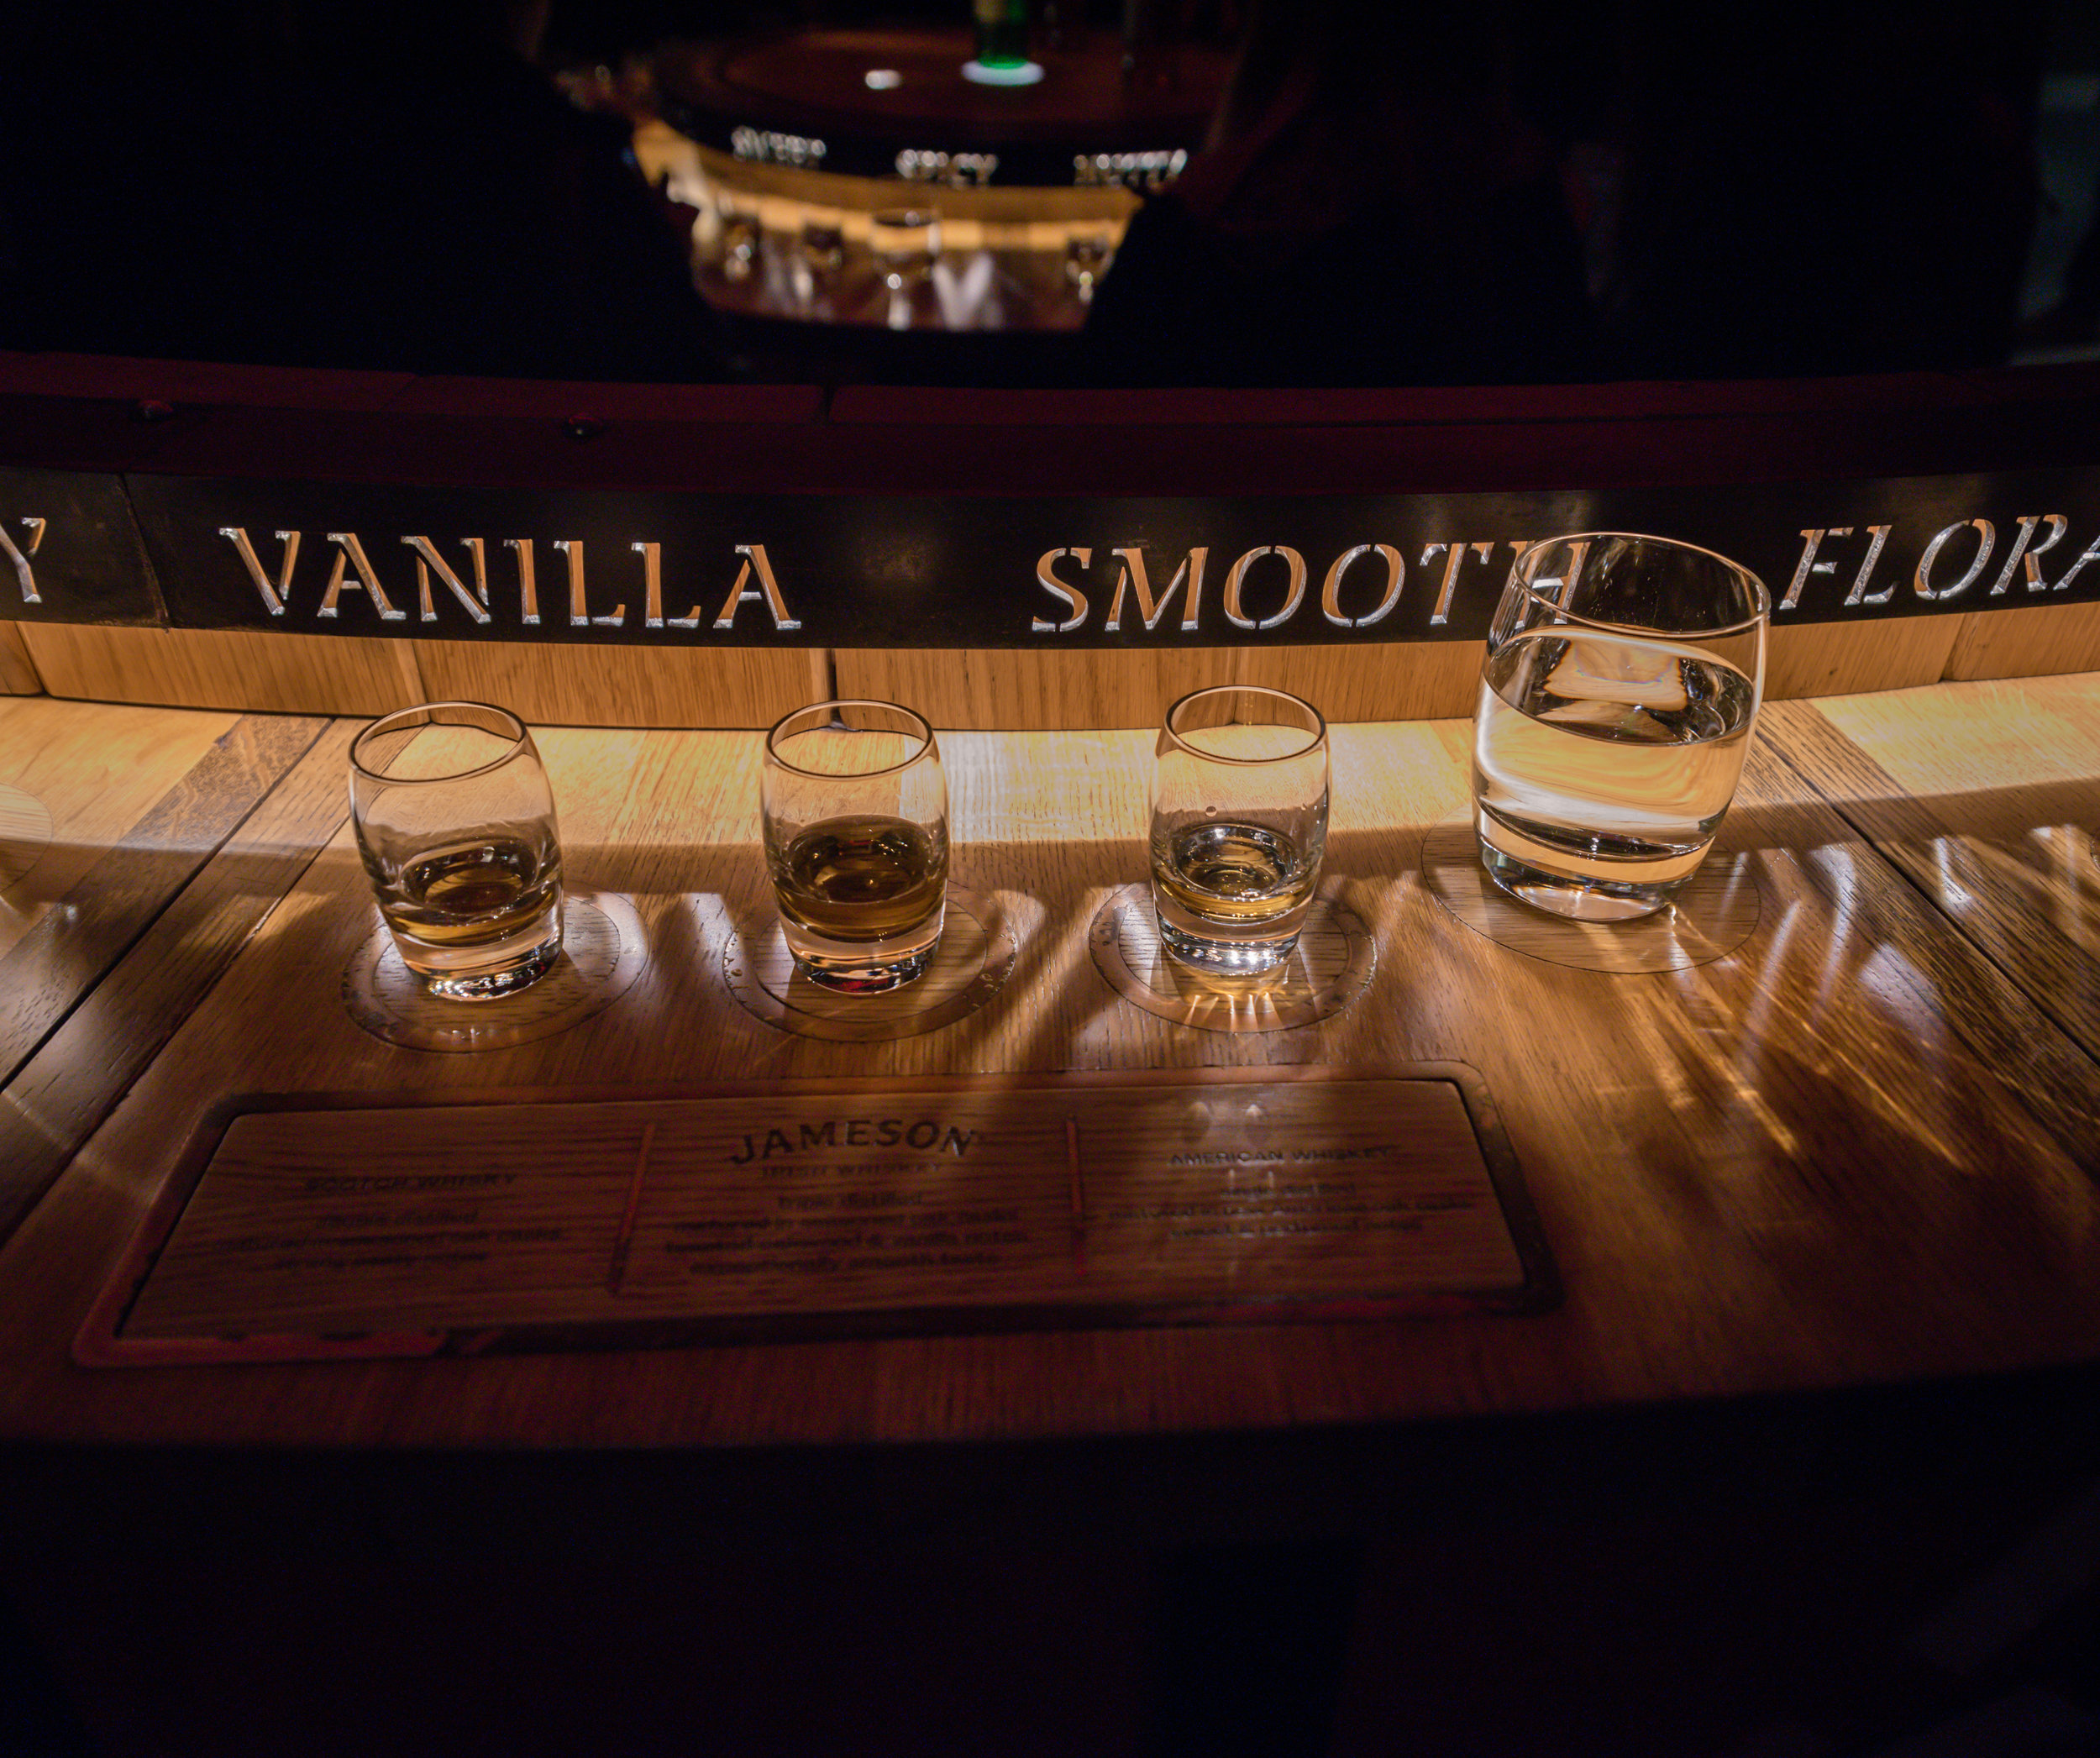 The whiskey taste testing!